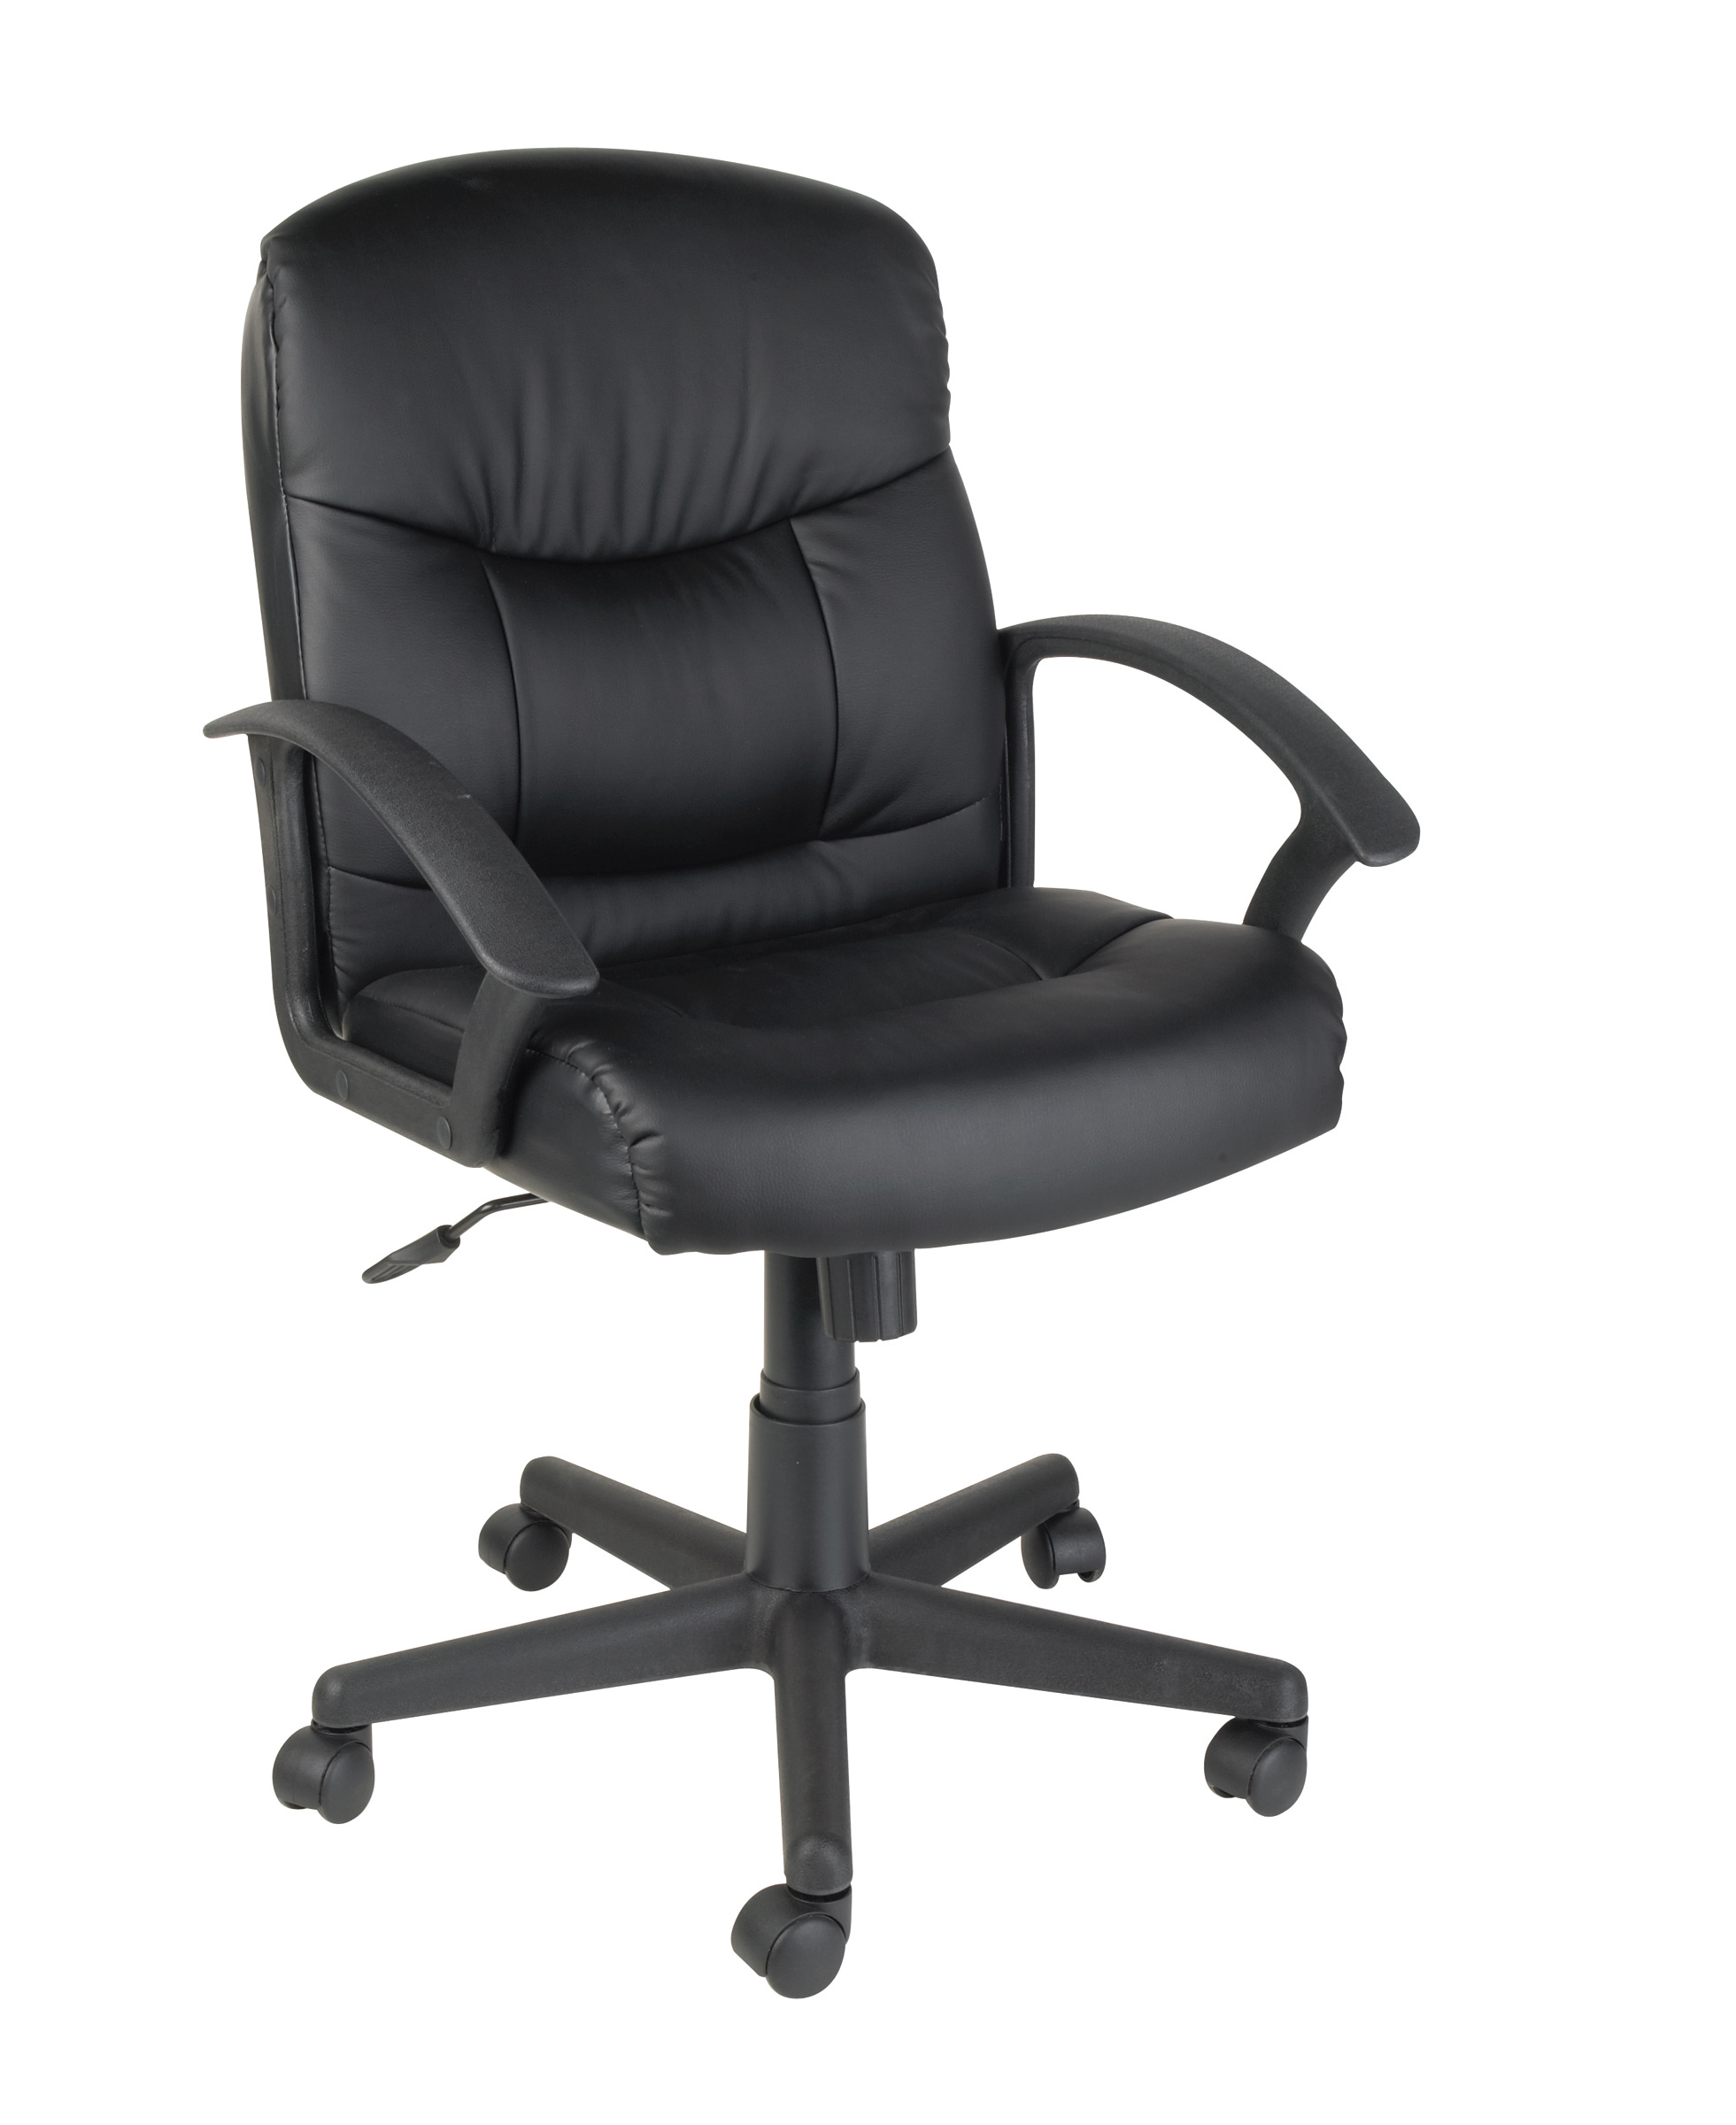 Glee II Mid-Back Manager Chair, Black